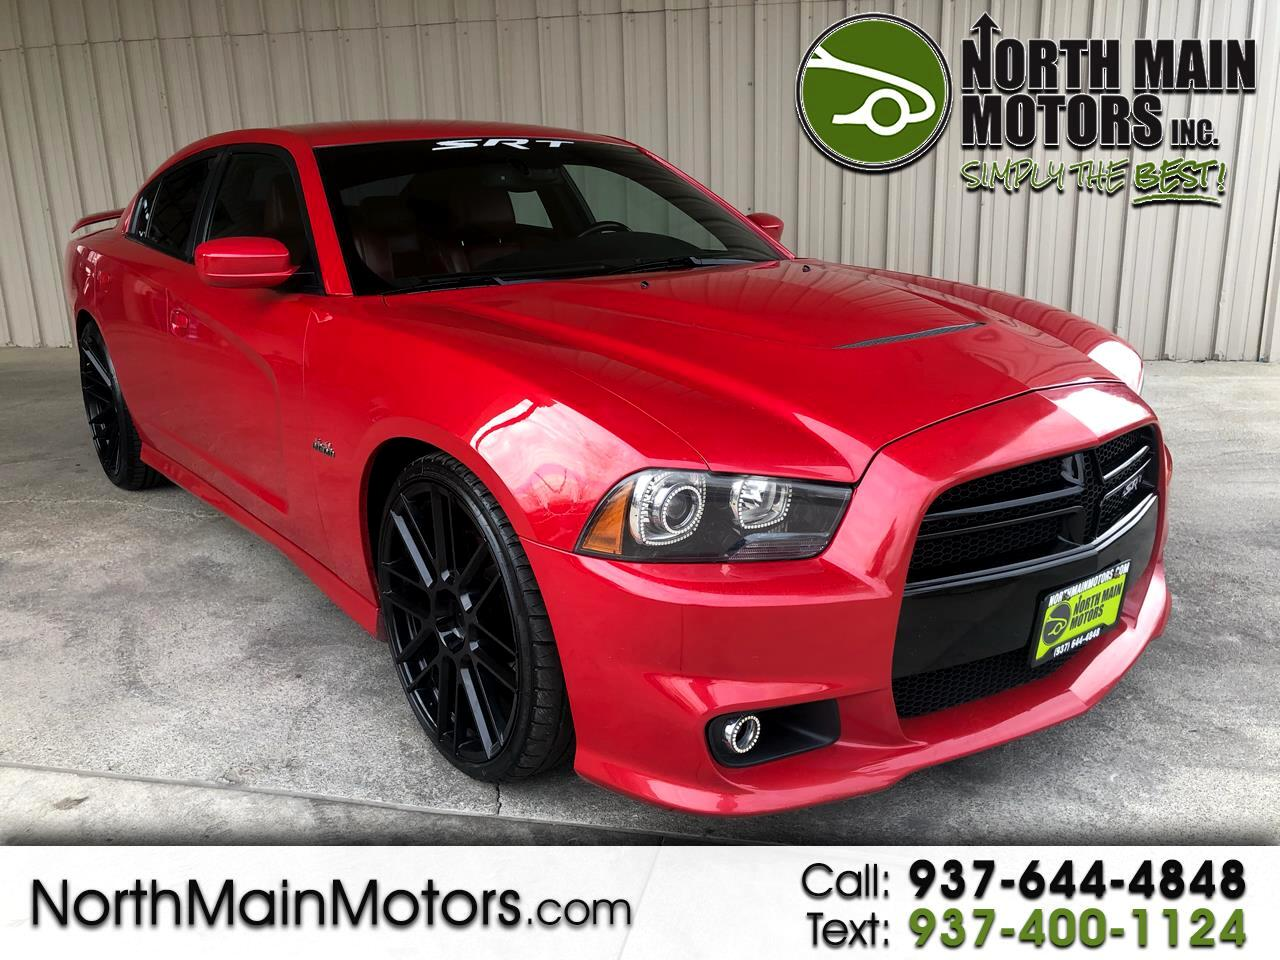 Dodge Charger 4dr Sdn SRT8 RWD 2012